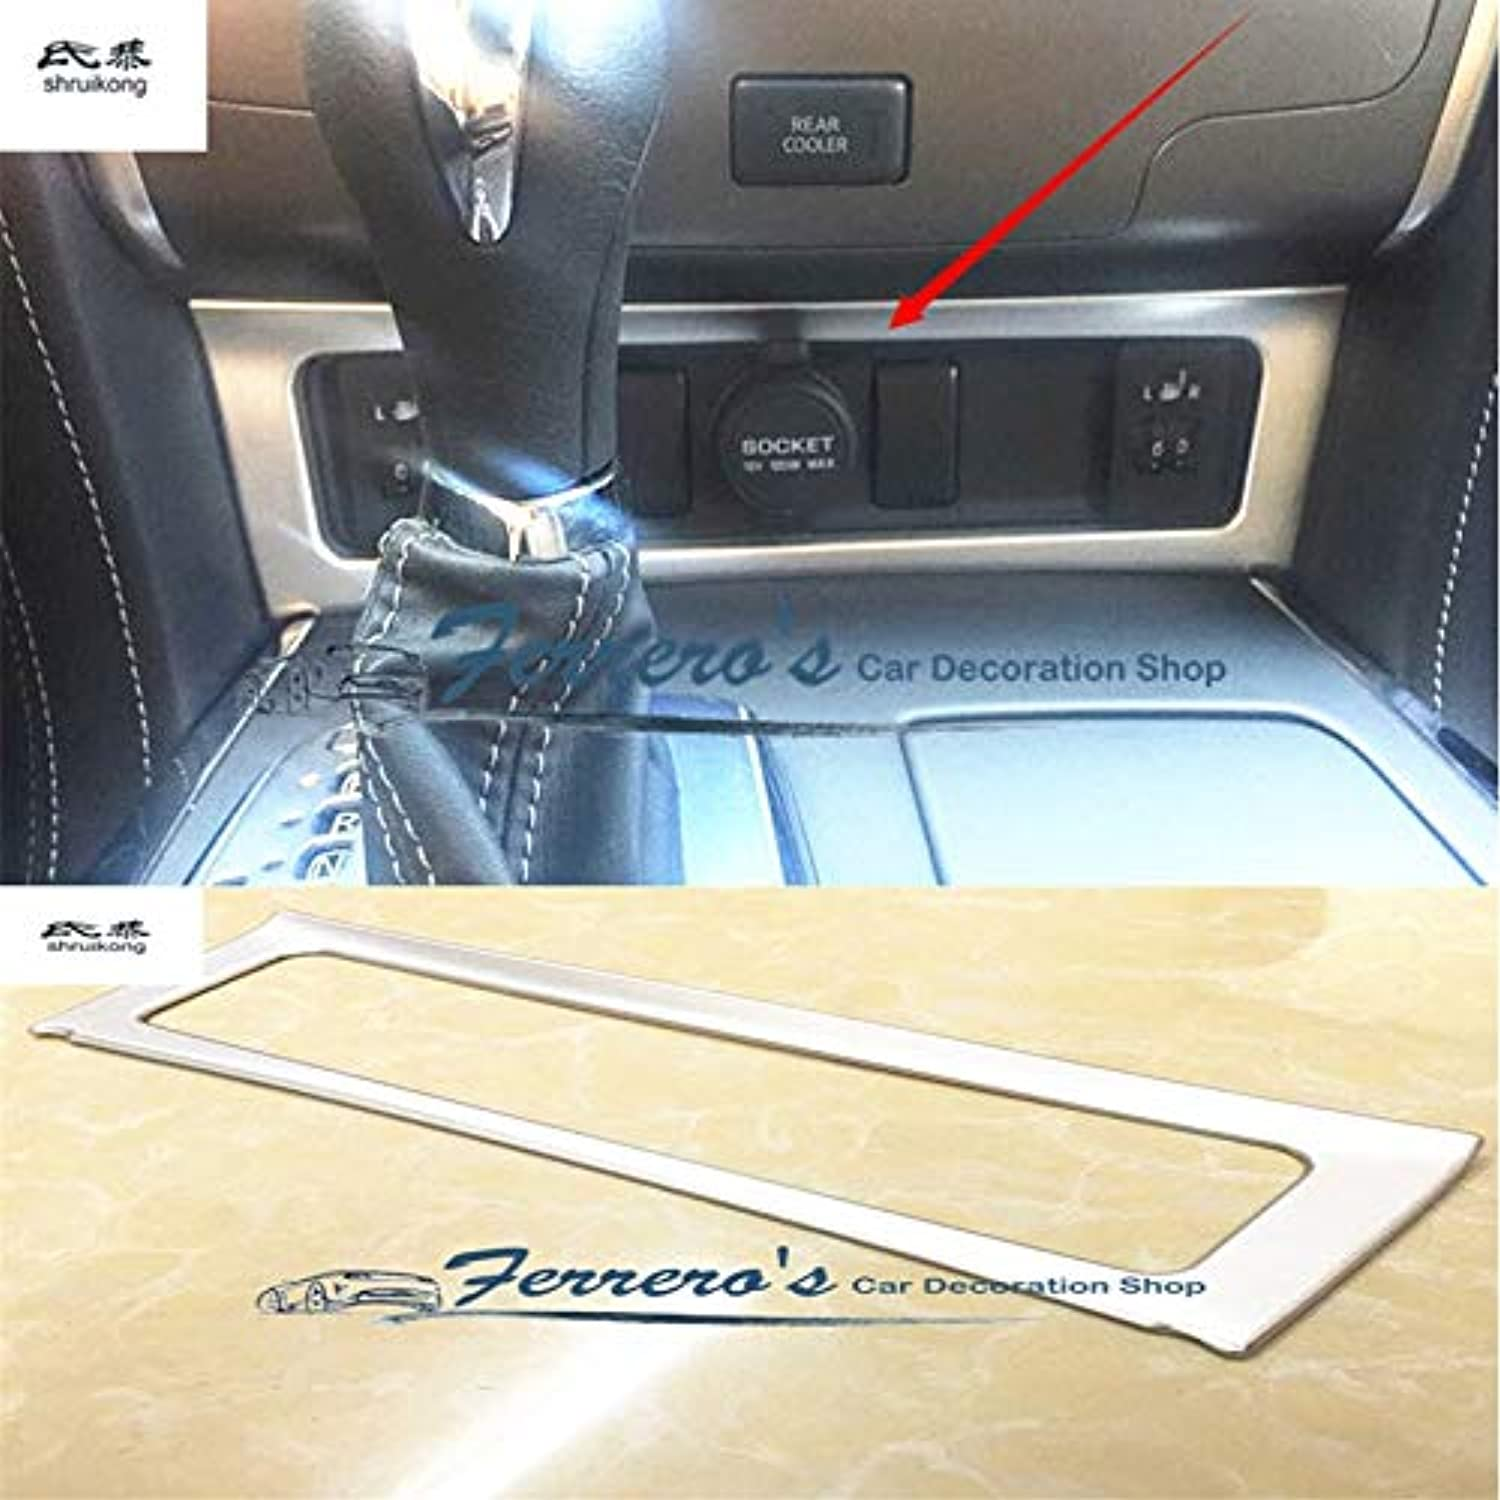 1pc ABS Chrome Cigarette Lighter Switch Decoration Cover Trims for Nissan Armada Patrol Royale Nismo Y62 20162018